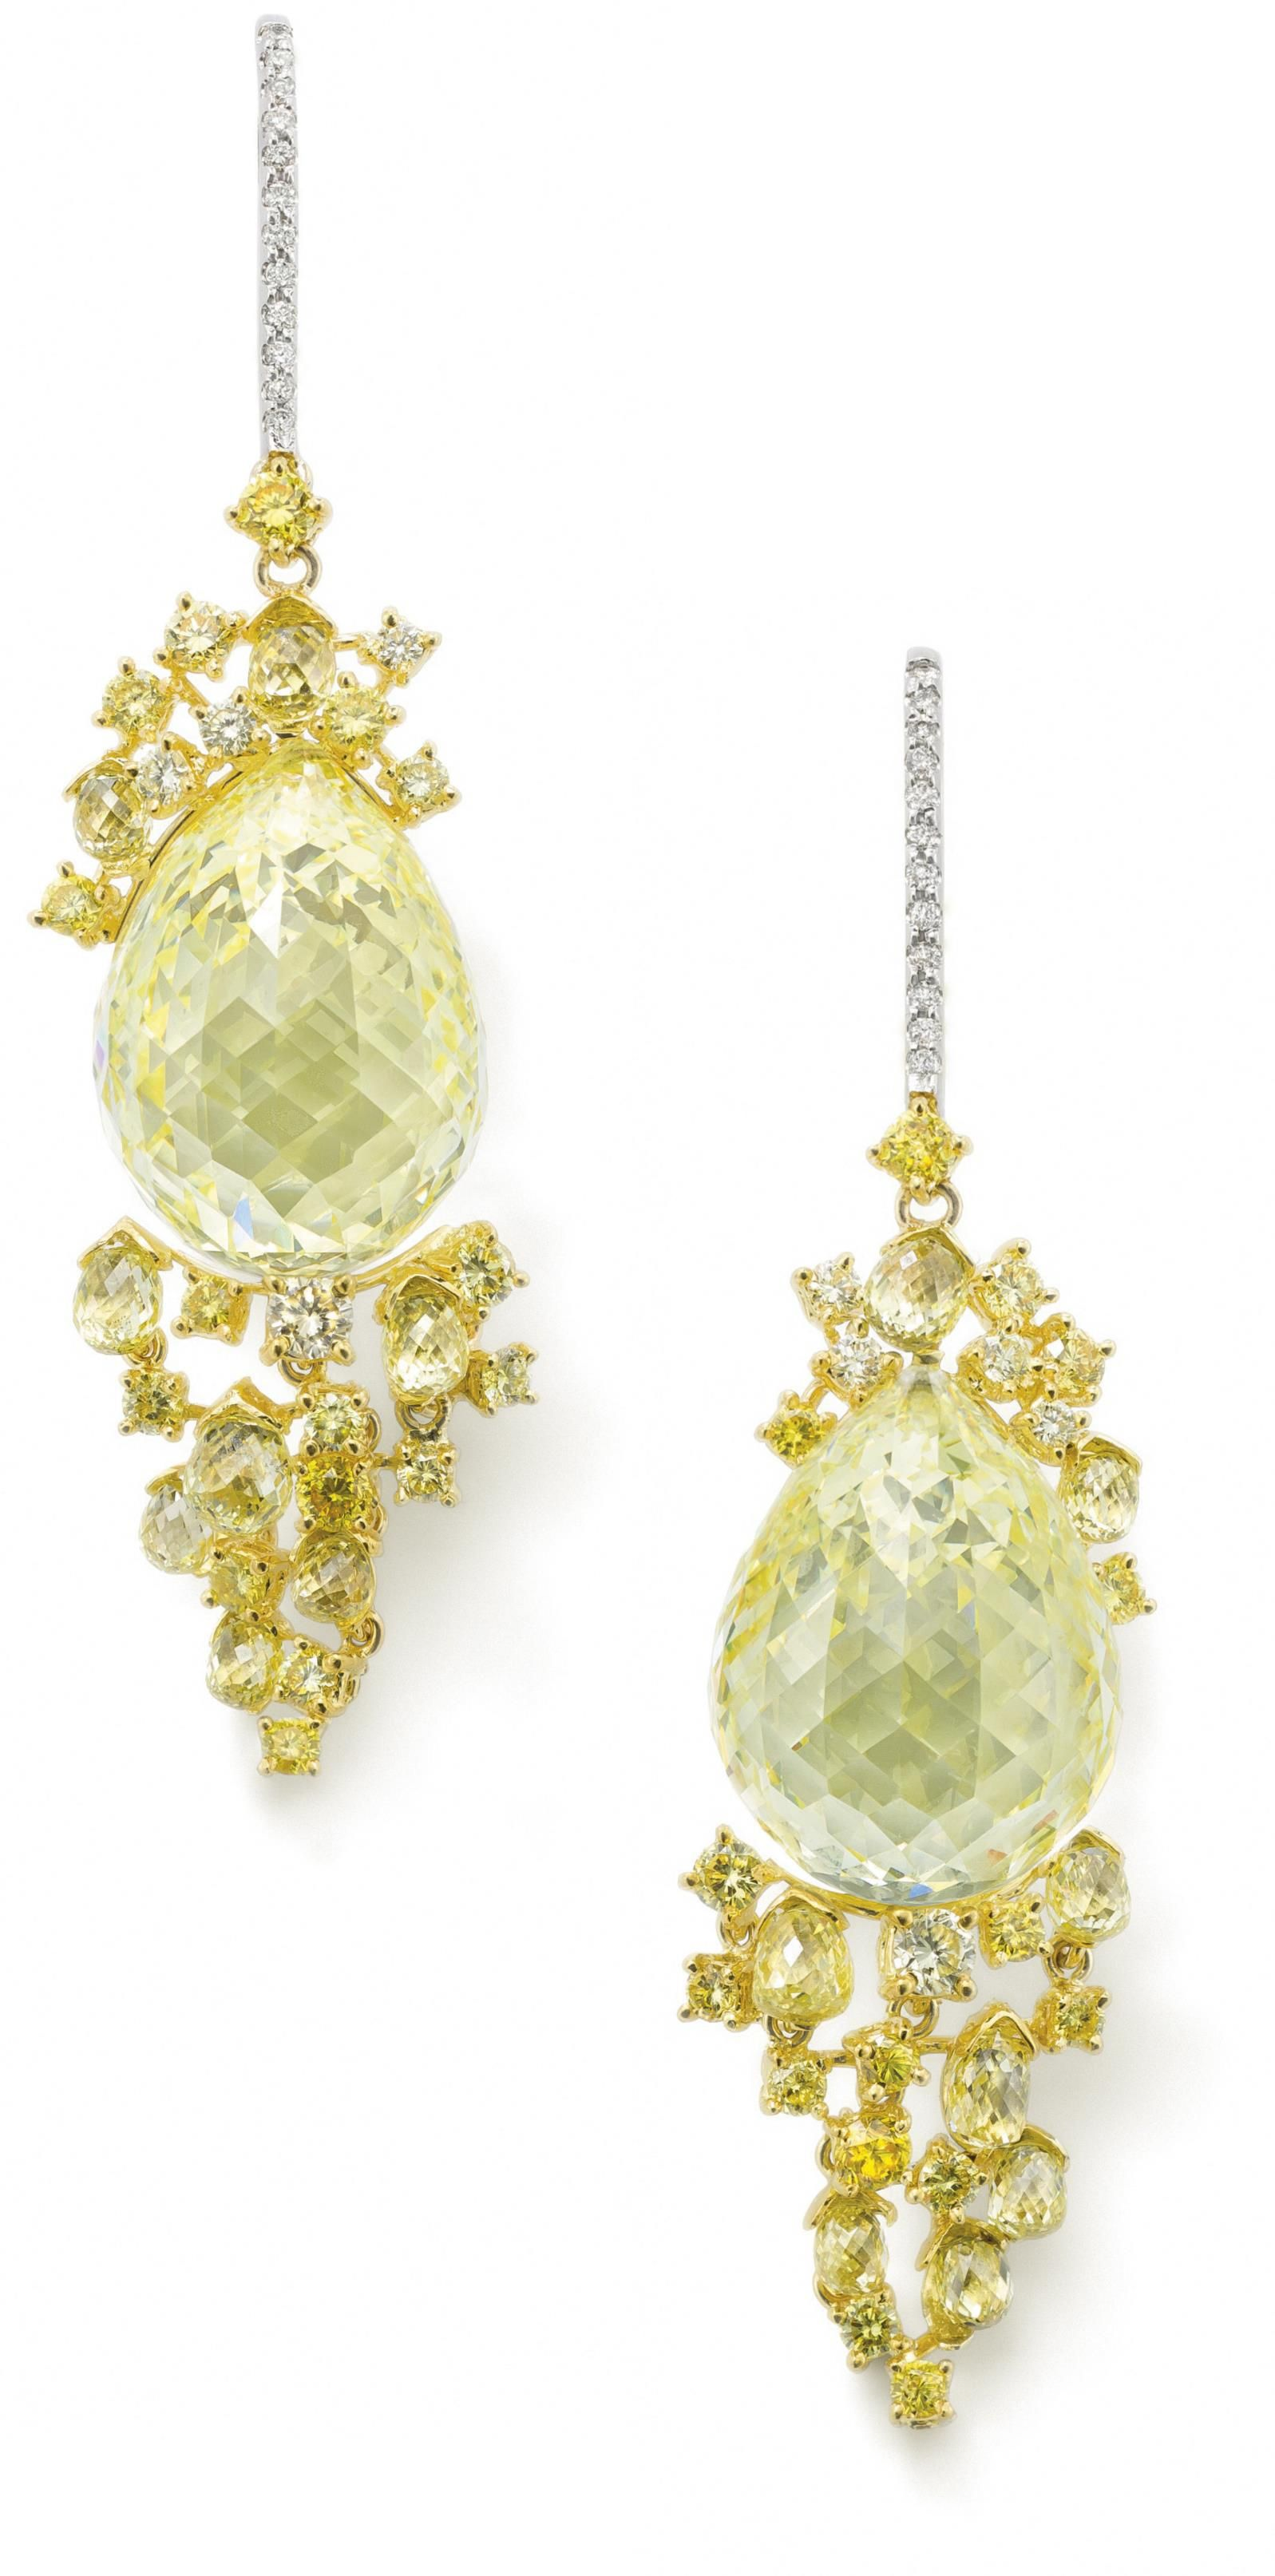 PHILLIPS : UK060111, Polished, A pair of natural fancy yellow diamond ear pendants, by Michael Youssoufian, Each designed as a central briolette-cut natural fancy yellow diamond, weighing 22.78 carats and 20.34 carats respectively, set to a briolette- and brilliant-cut coloured diamond surmount and graduating drop, pave-set diamond earwires, length 5.8 cm, remaining diamond weight 4.72 carats. Estimate £400,000 - 600,000